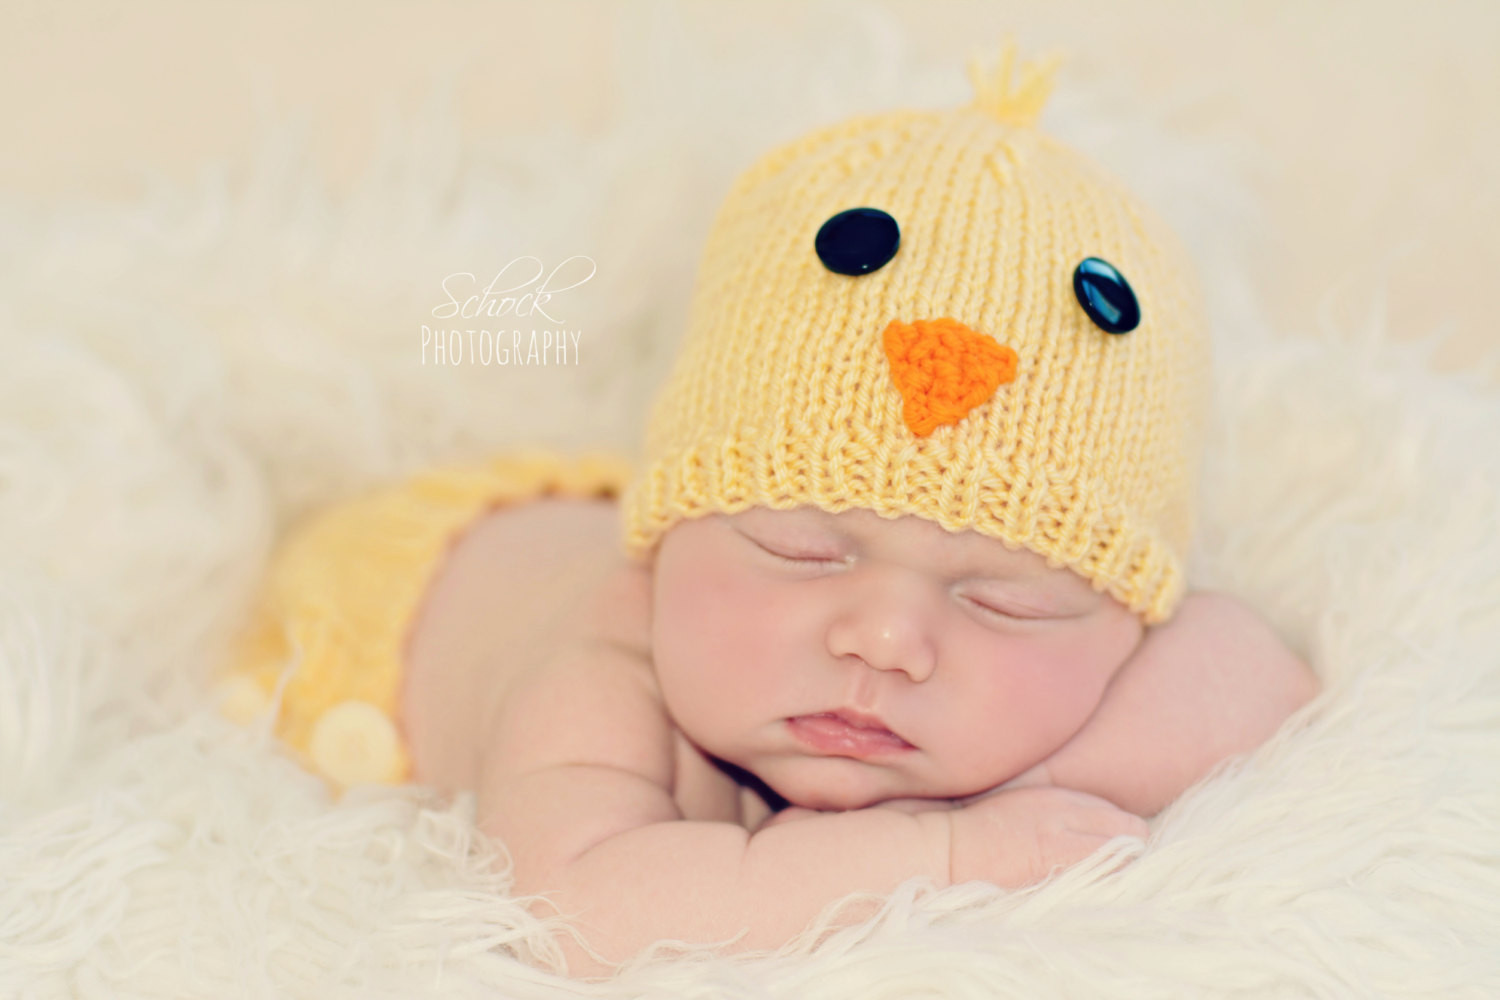 Unique Baby Chicken Hat Chick Baby Hat Chicken Newborn Hat Baby Chicken Hat Of Elegant Baby Chick Hat Chicken Hat Newborn 3m 6m Cute Crochet Baby Chicken Hat